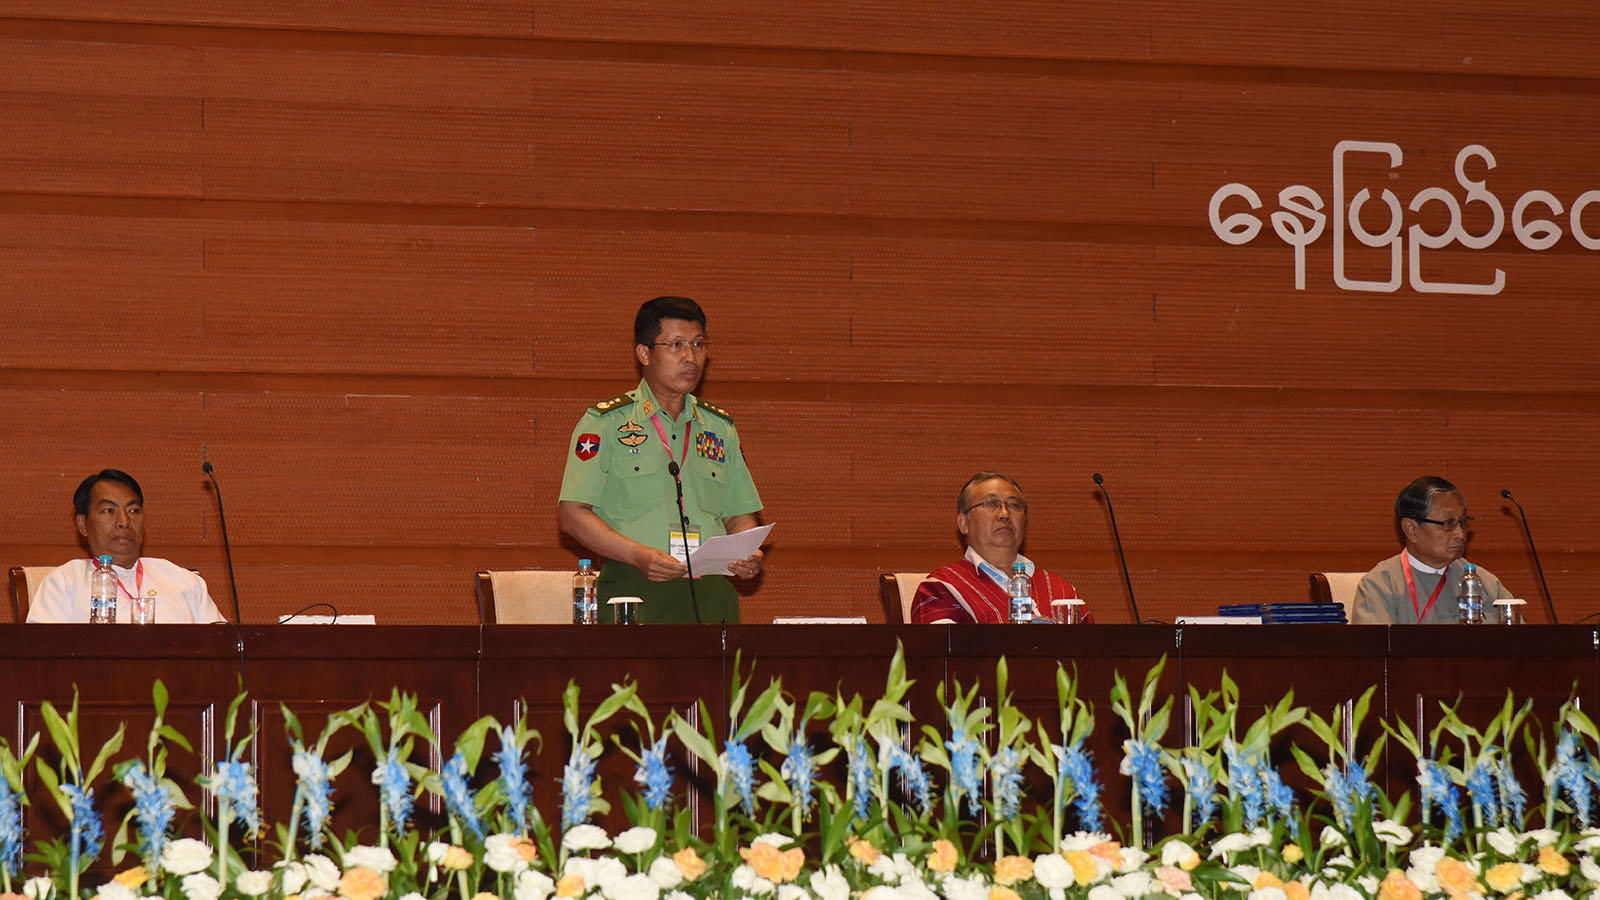 Lt-Gen Tin Maung Win delivers speech at closing of the Third Session of the Union Peace Conference-21st Century Panglong.Photo: MNA